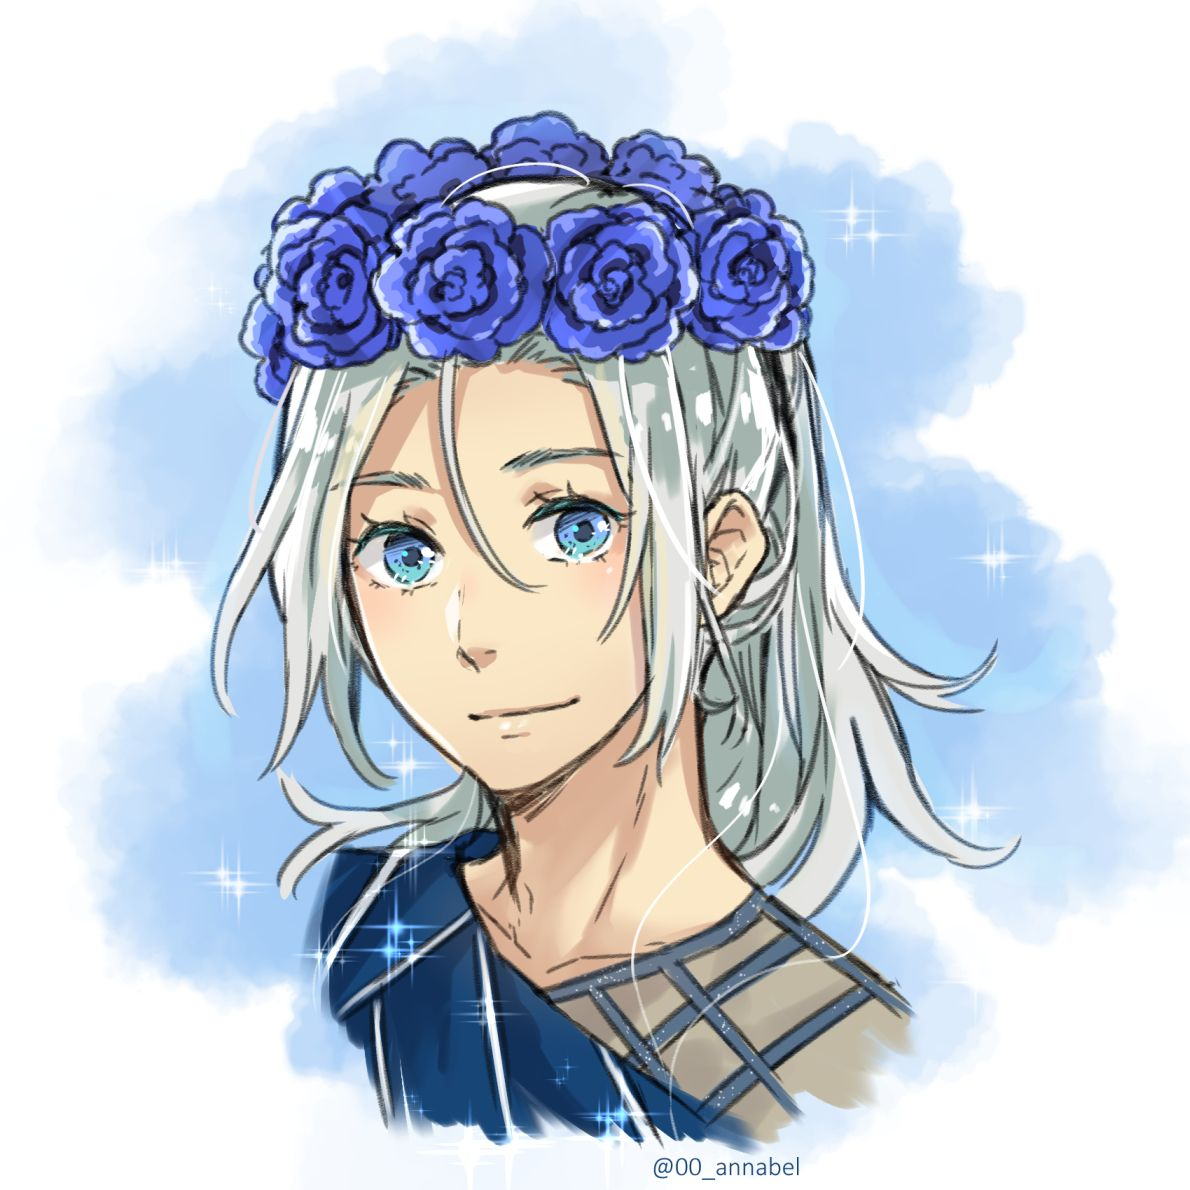 Annabel younger flower crown Victor cause he is freaking